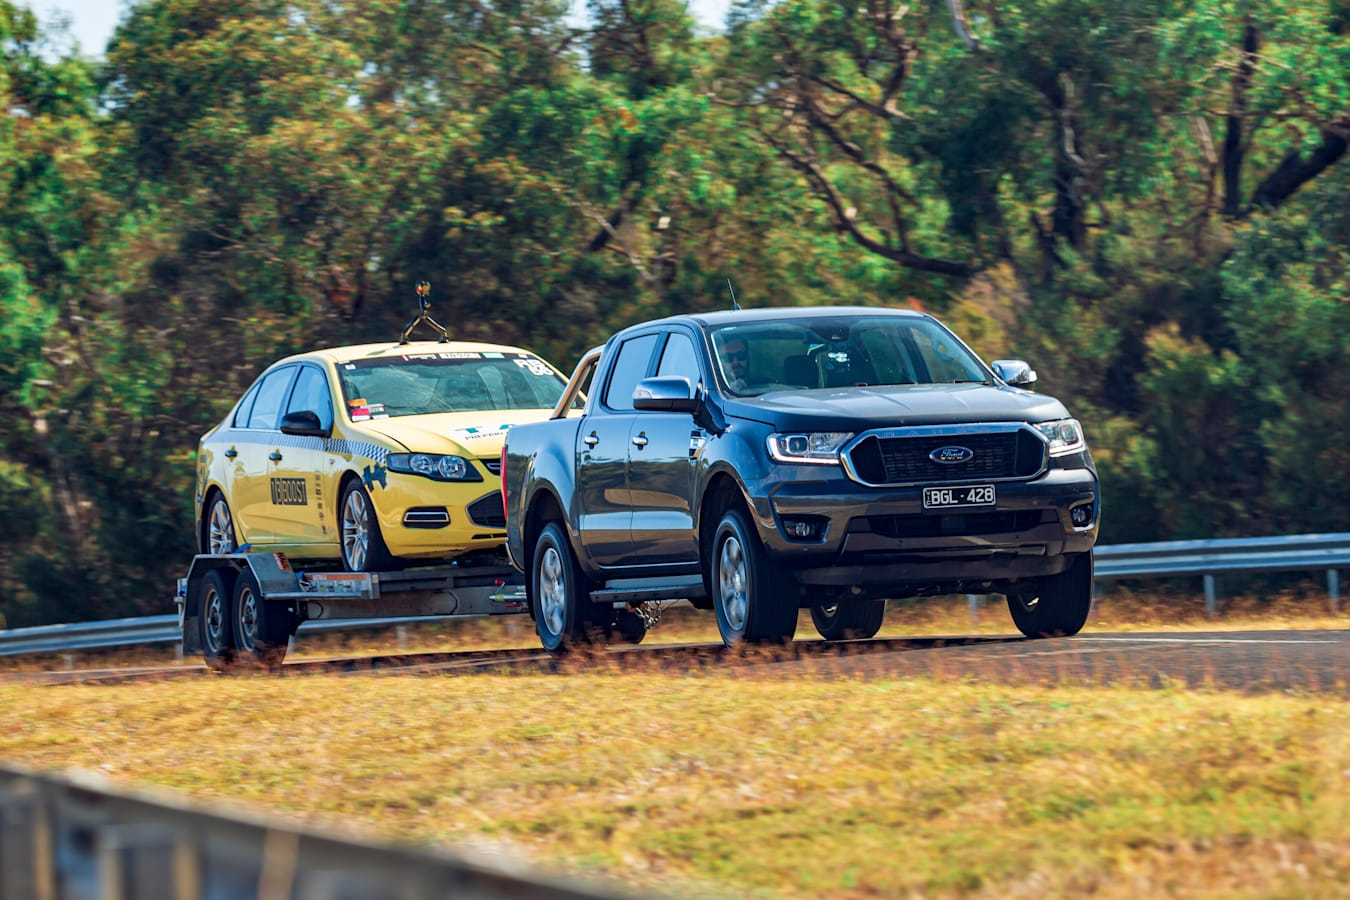 4 X 4 Australia Comparisons 2021 May 21 Ford Ranger XLT Towing Performance